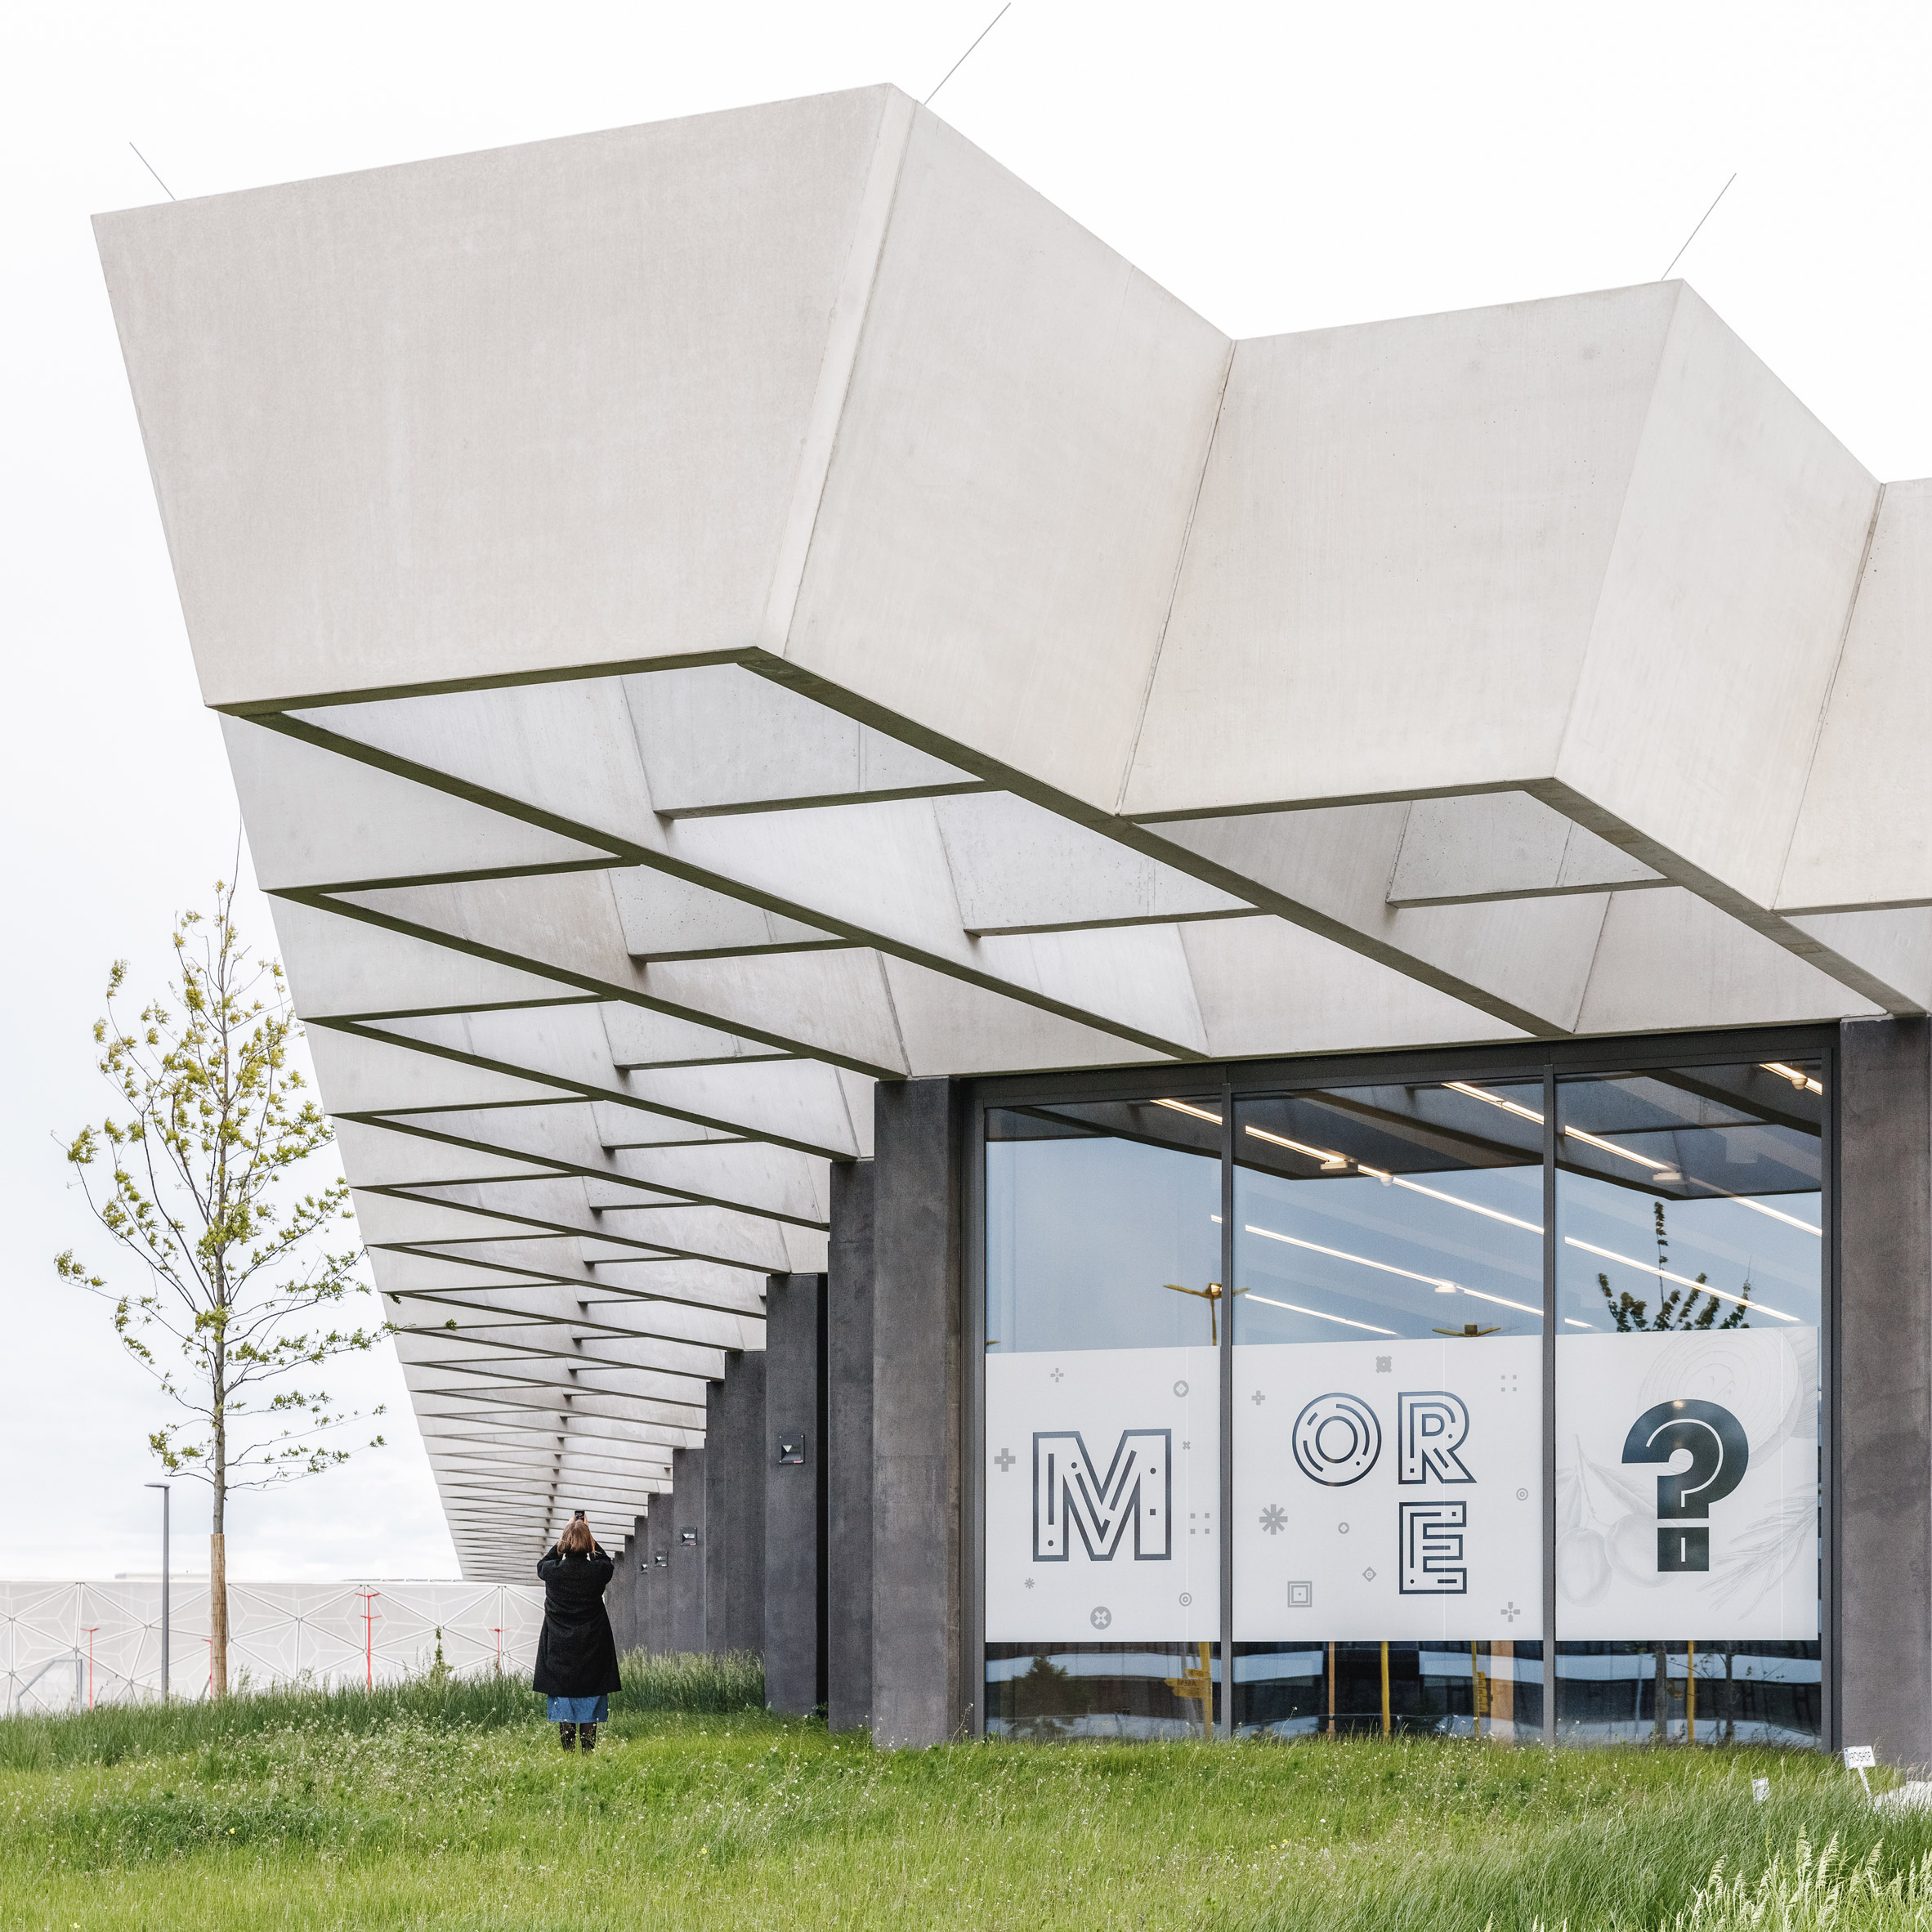 Halftime by COBE at the Adidas' World of Sports campus in Germany